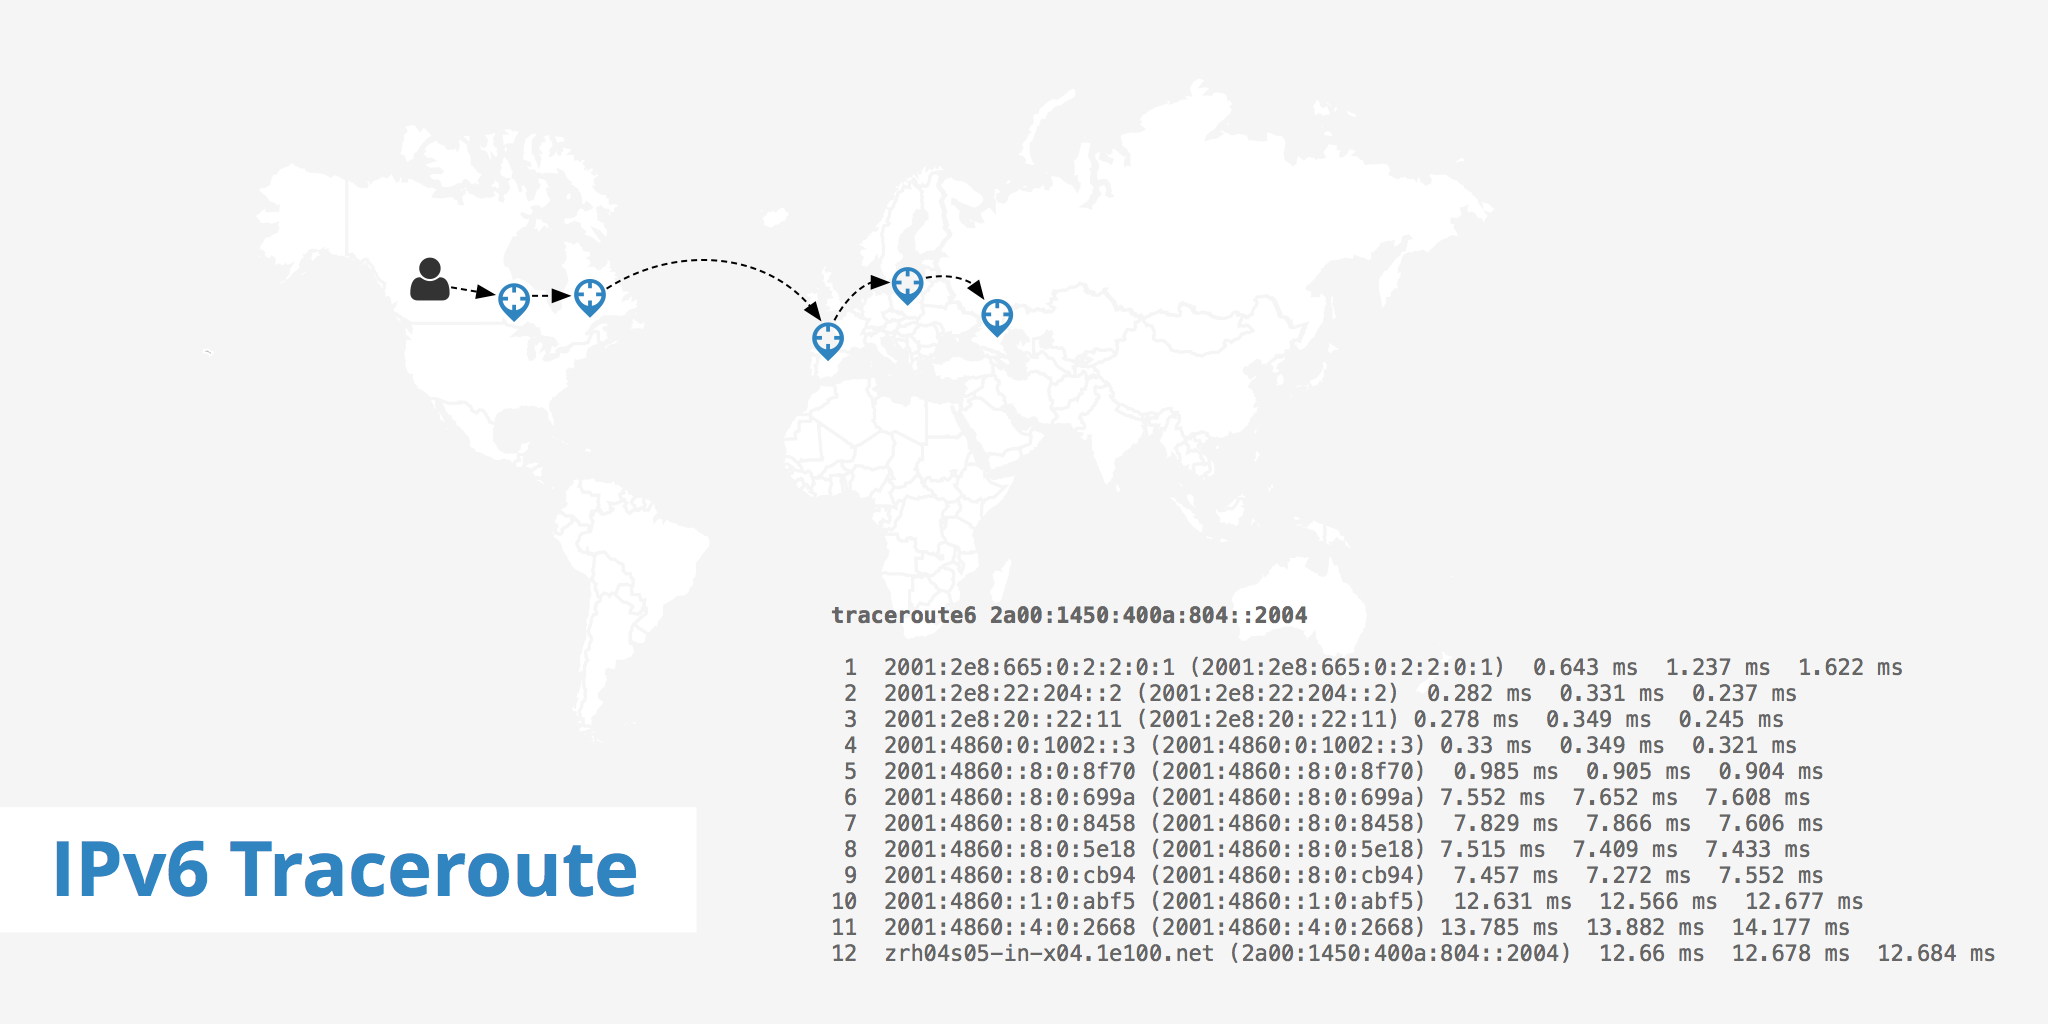 IPv6 Traceroute - KeyCDN Support